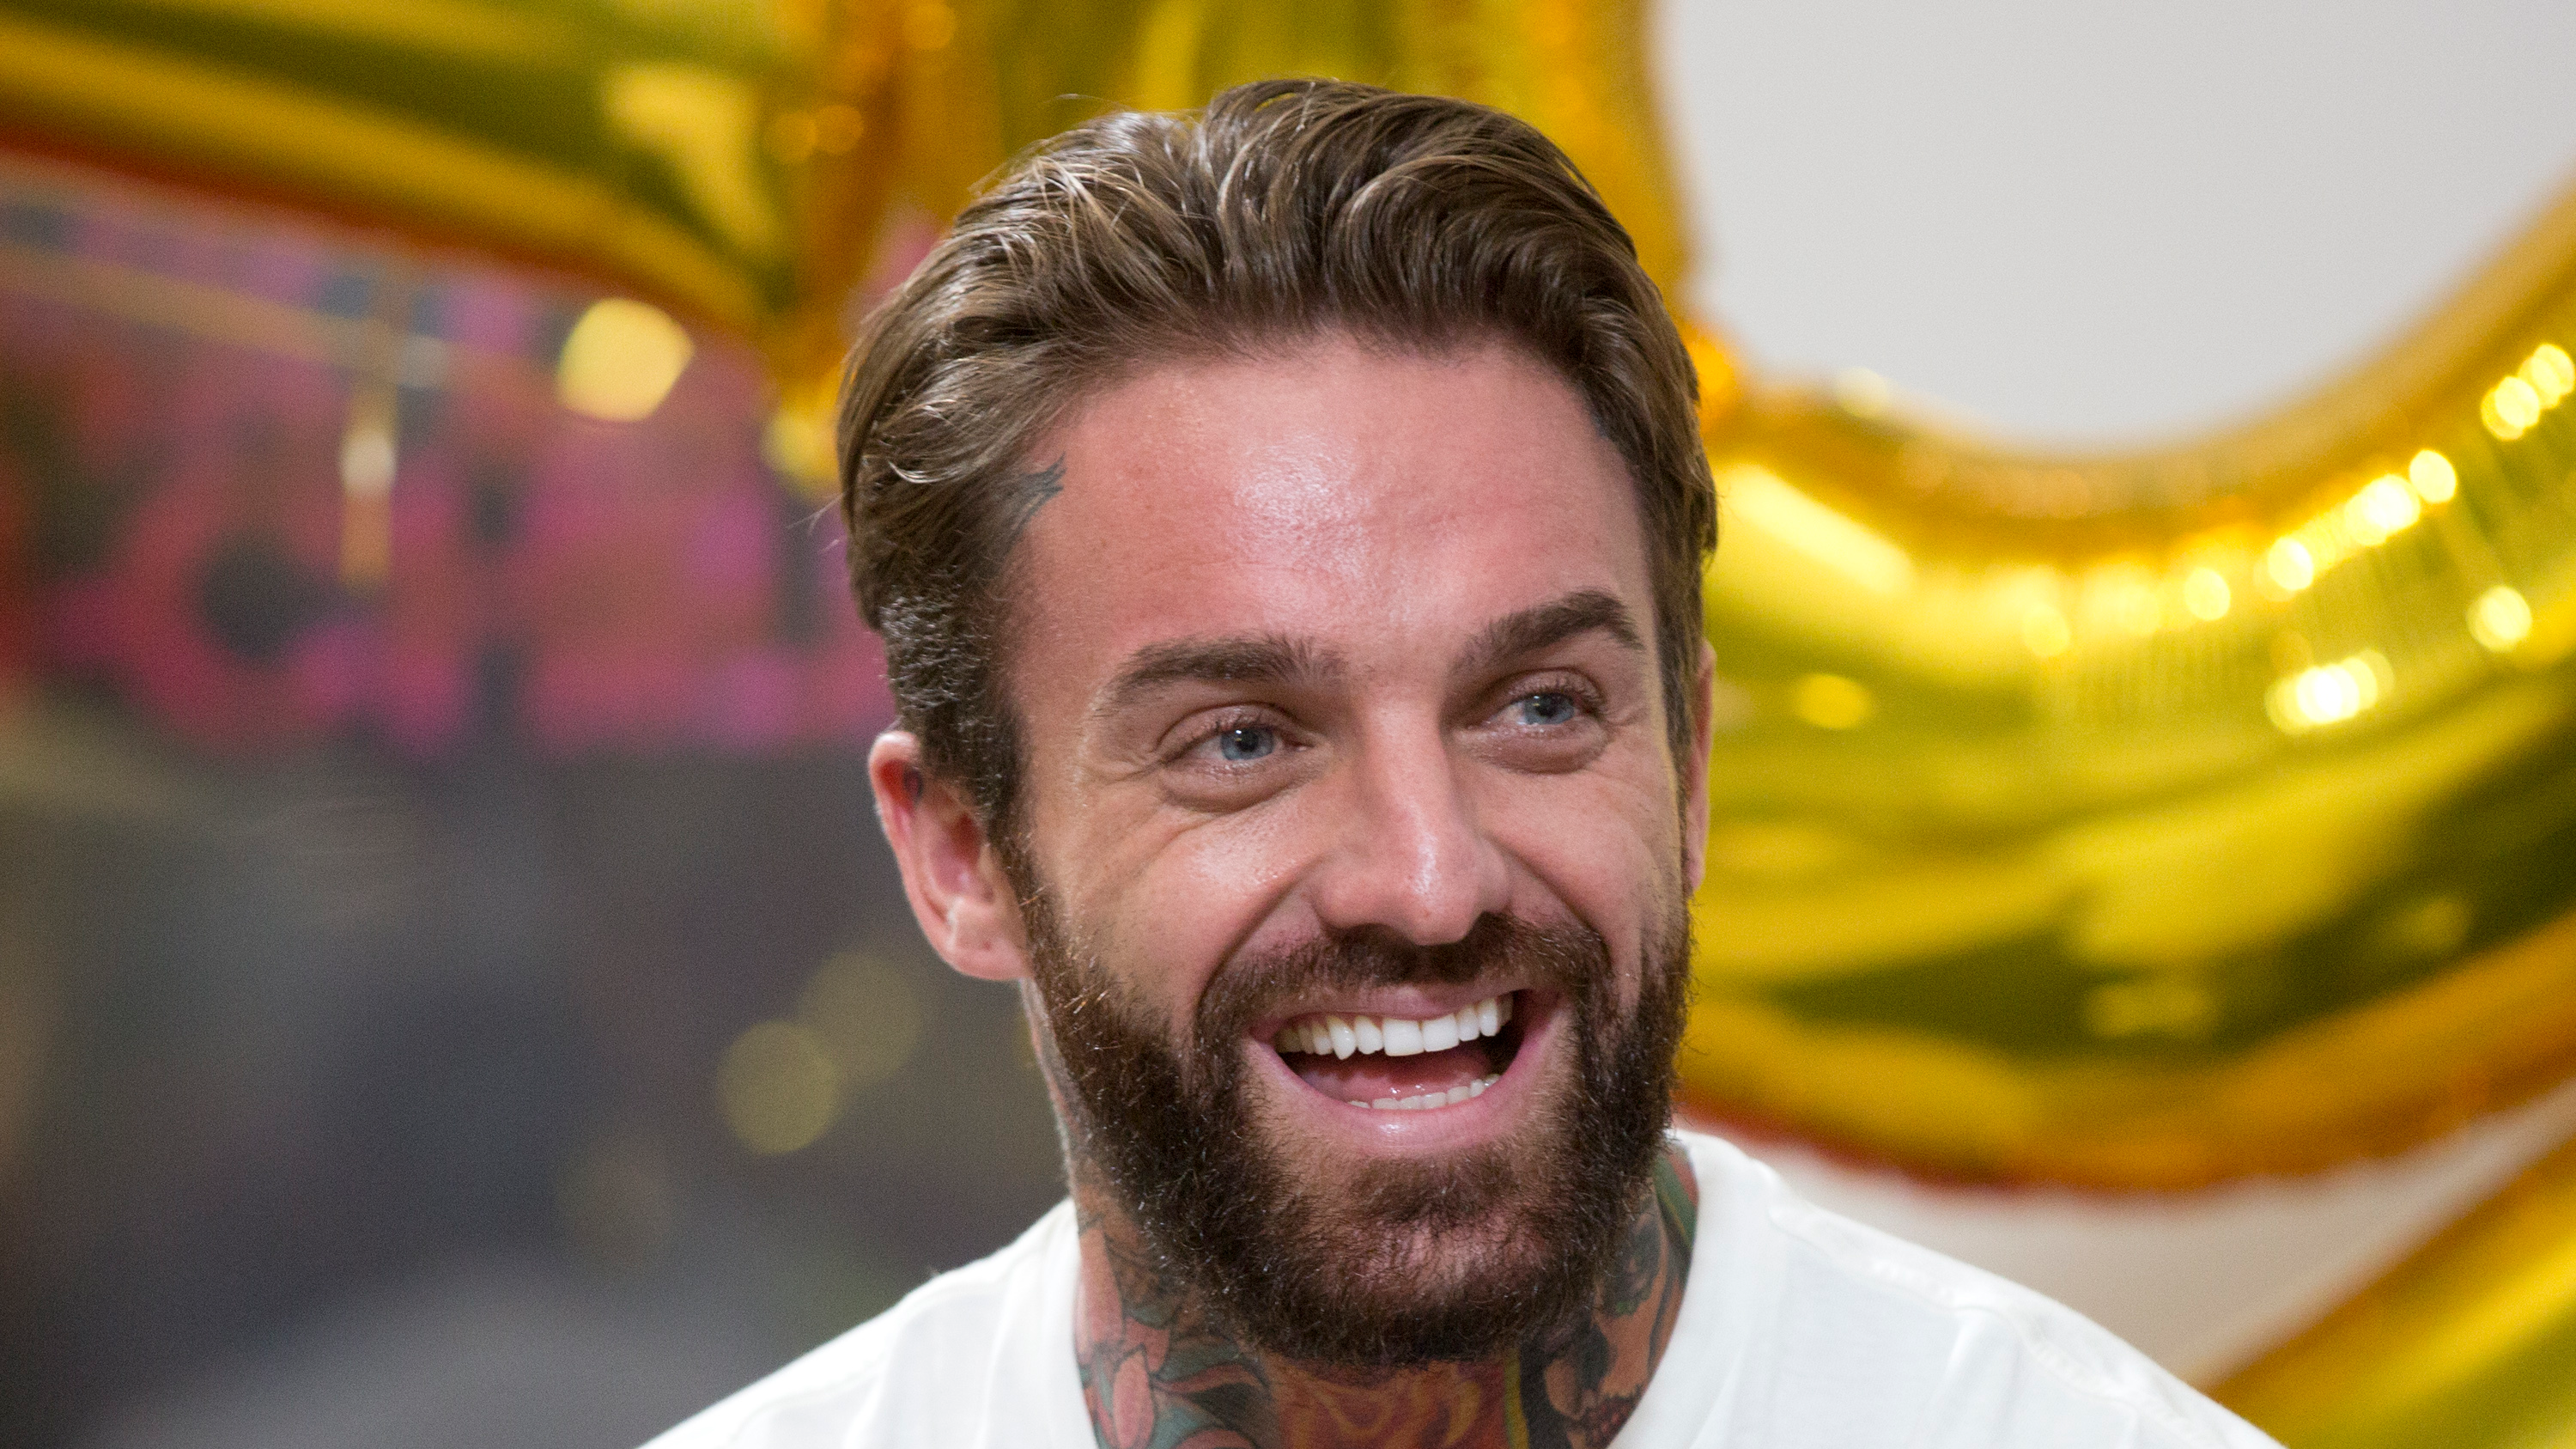 Aaron Chalmers Defeats Karl Donaldson With Knockout In Less Than A Minute